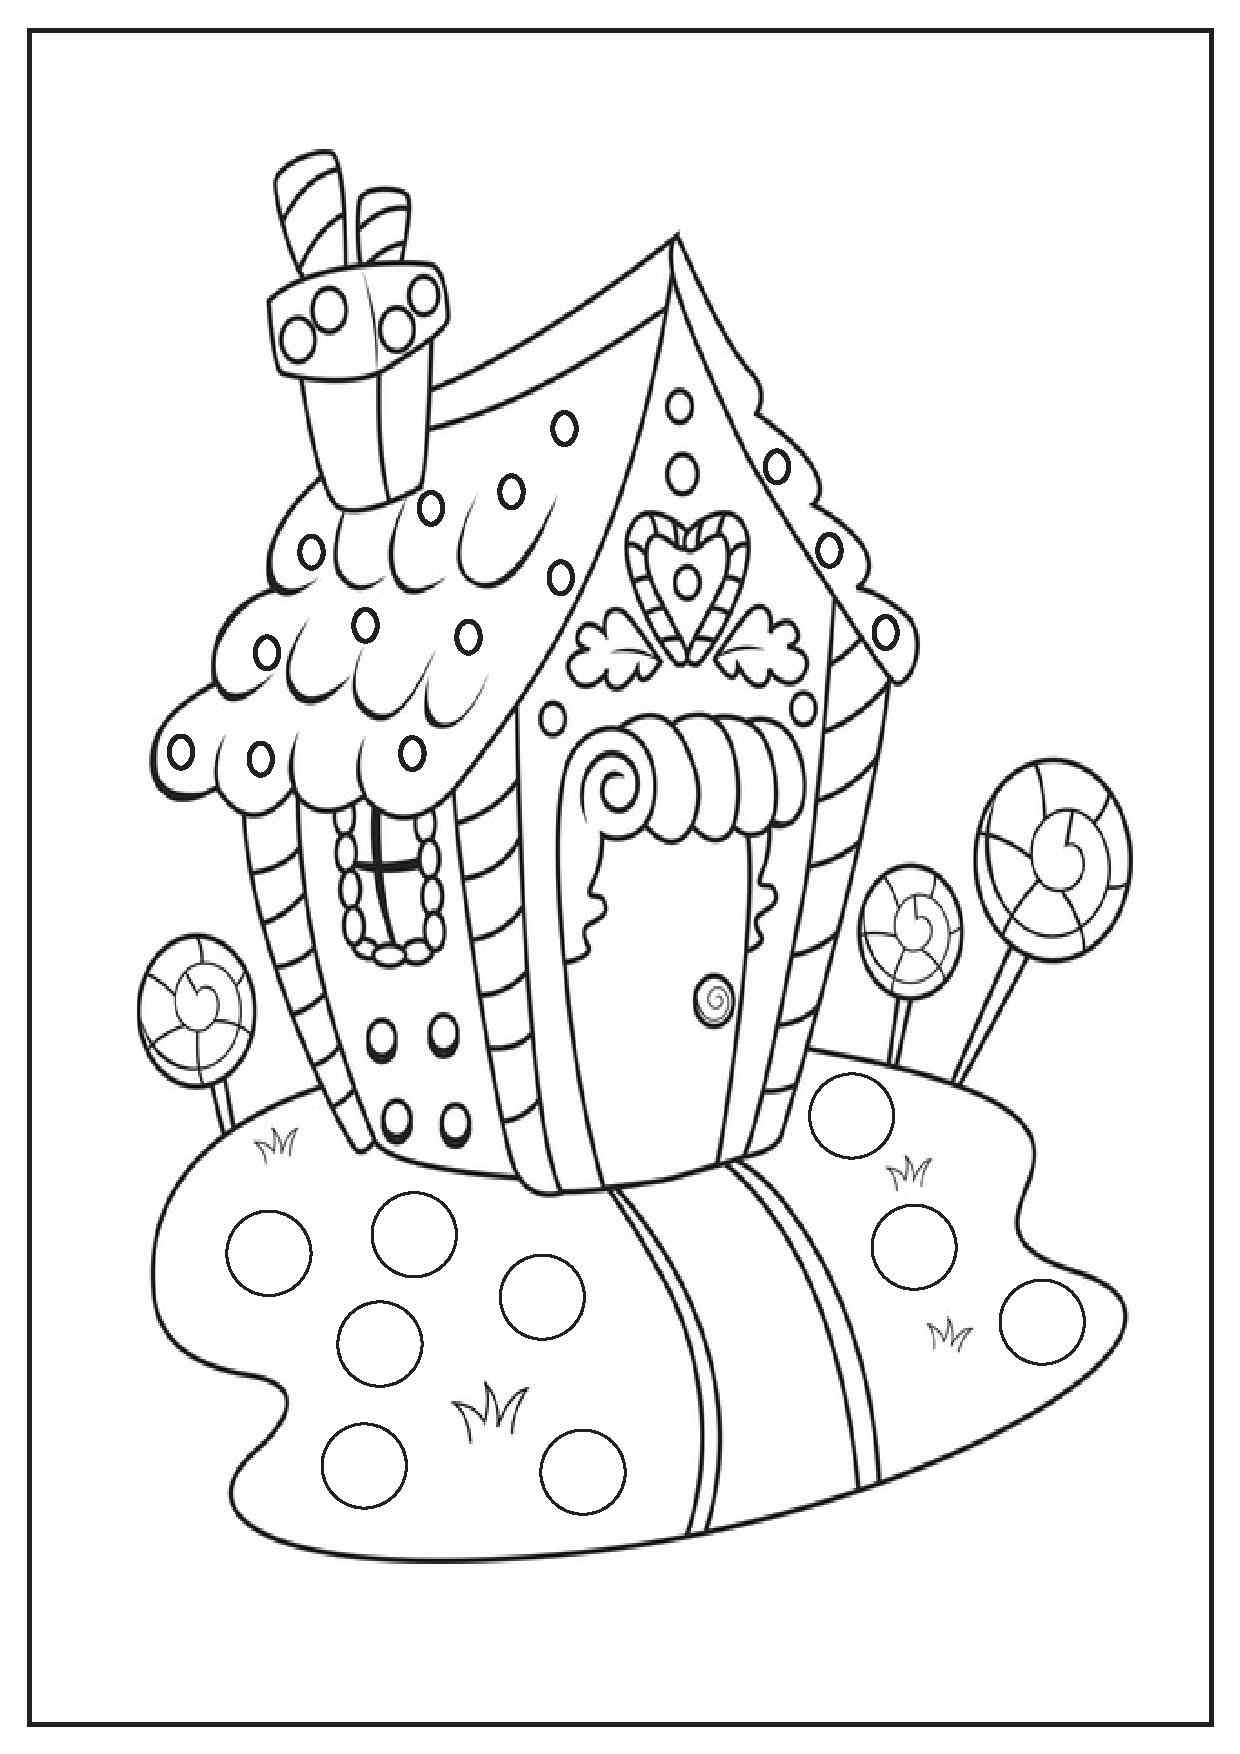 Christmas Coloring Pages That You Can Print With Printable